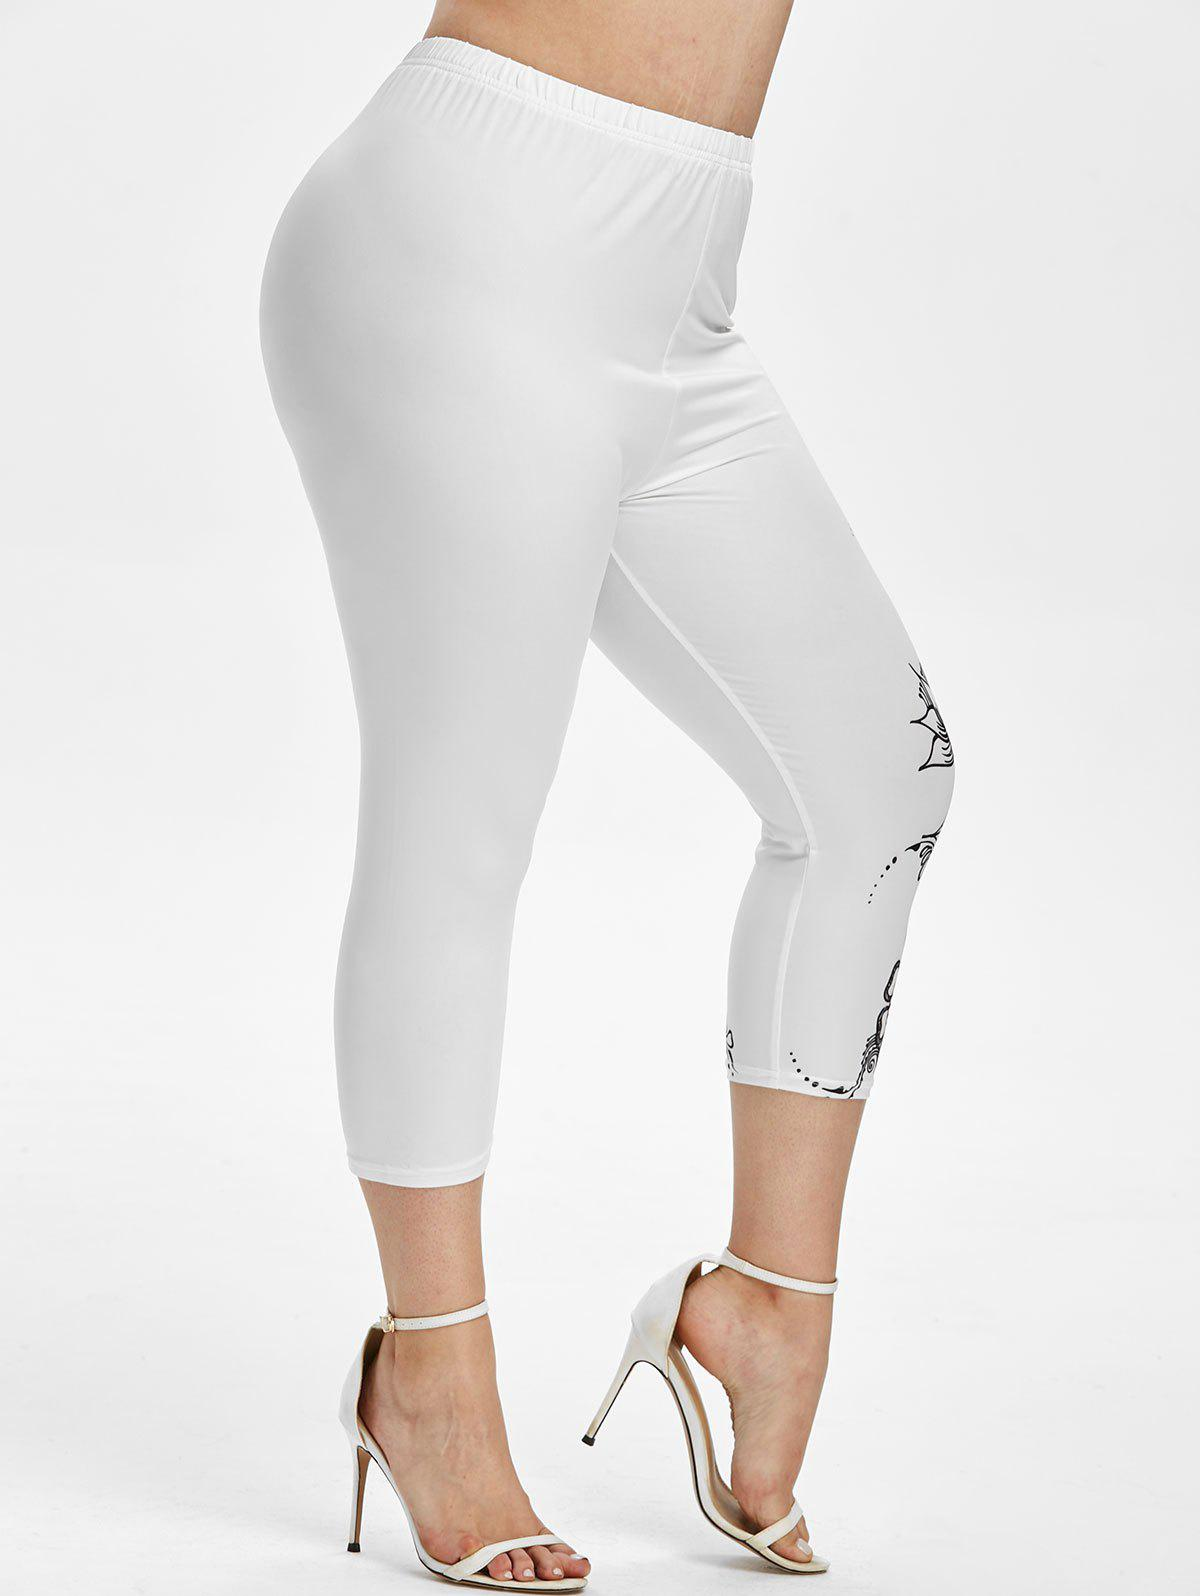 Fashion Plus Size Printed Capri Leggings